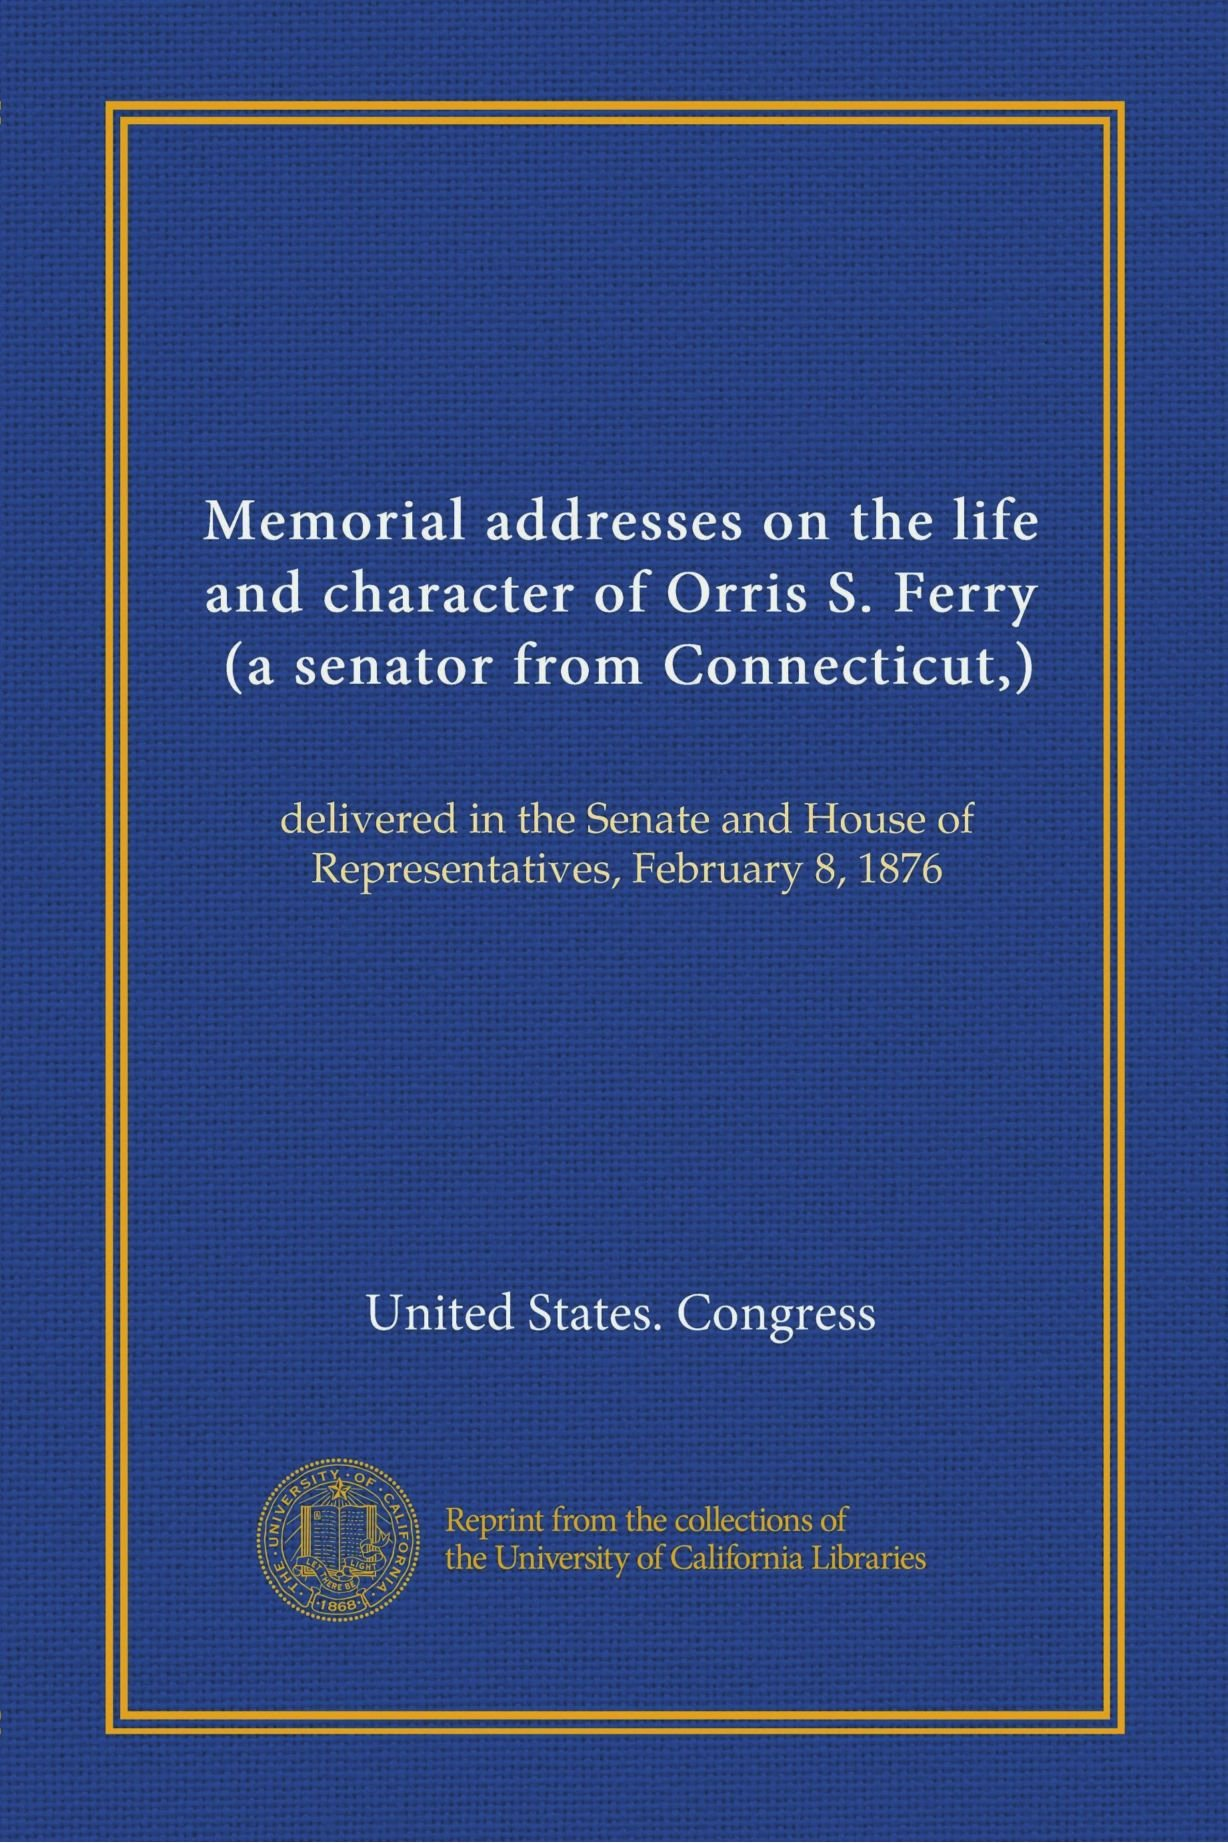 Memorial addresses on the life and character of Orris S. Ferry, (a senator from Connecticut,): delivered in the Senate and House of Representatives, February 8, 1876